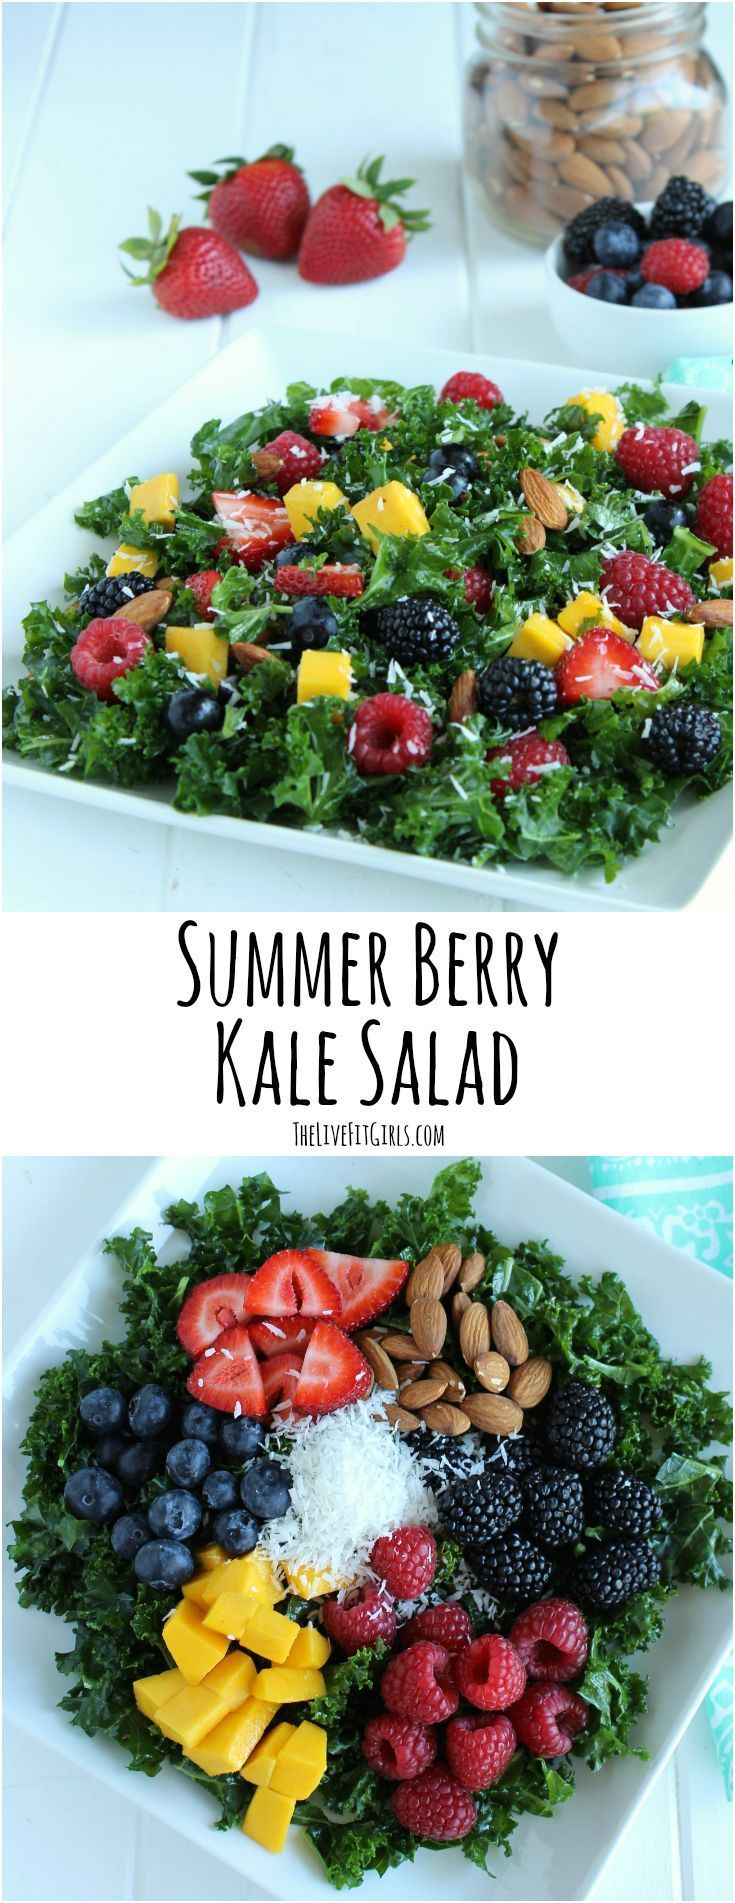 Enjoy all the flavors of summer with this simple Summer Berry Kale Salad. Sweet fruit and shredded coconut will have you dreaming of an island oasis.